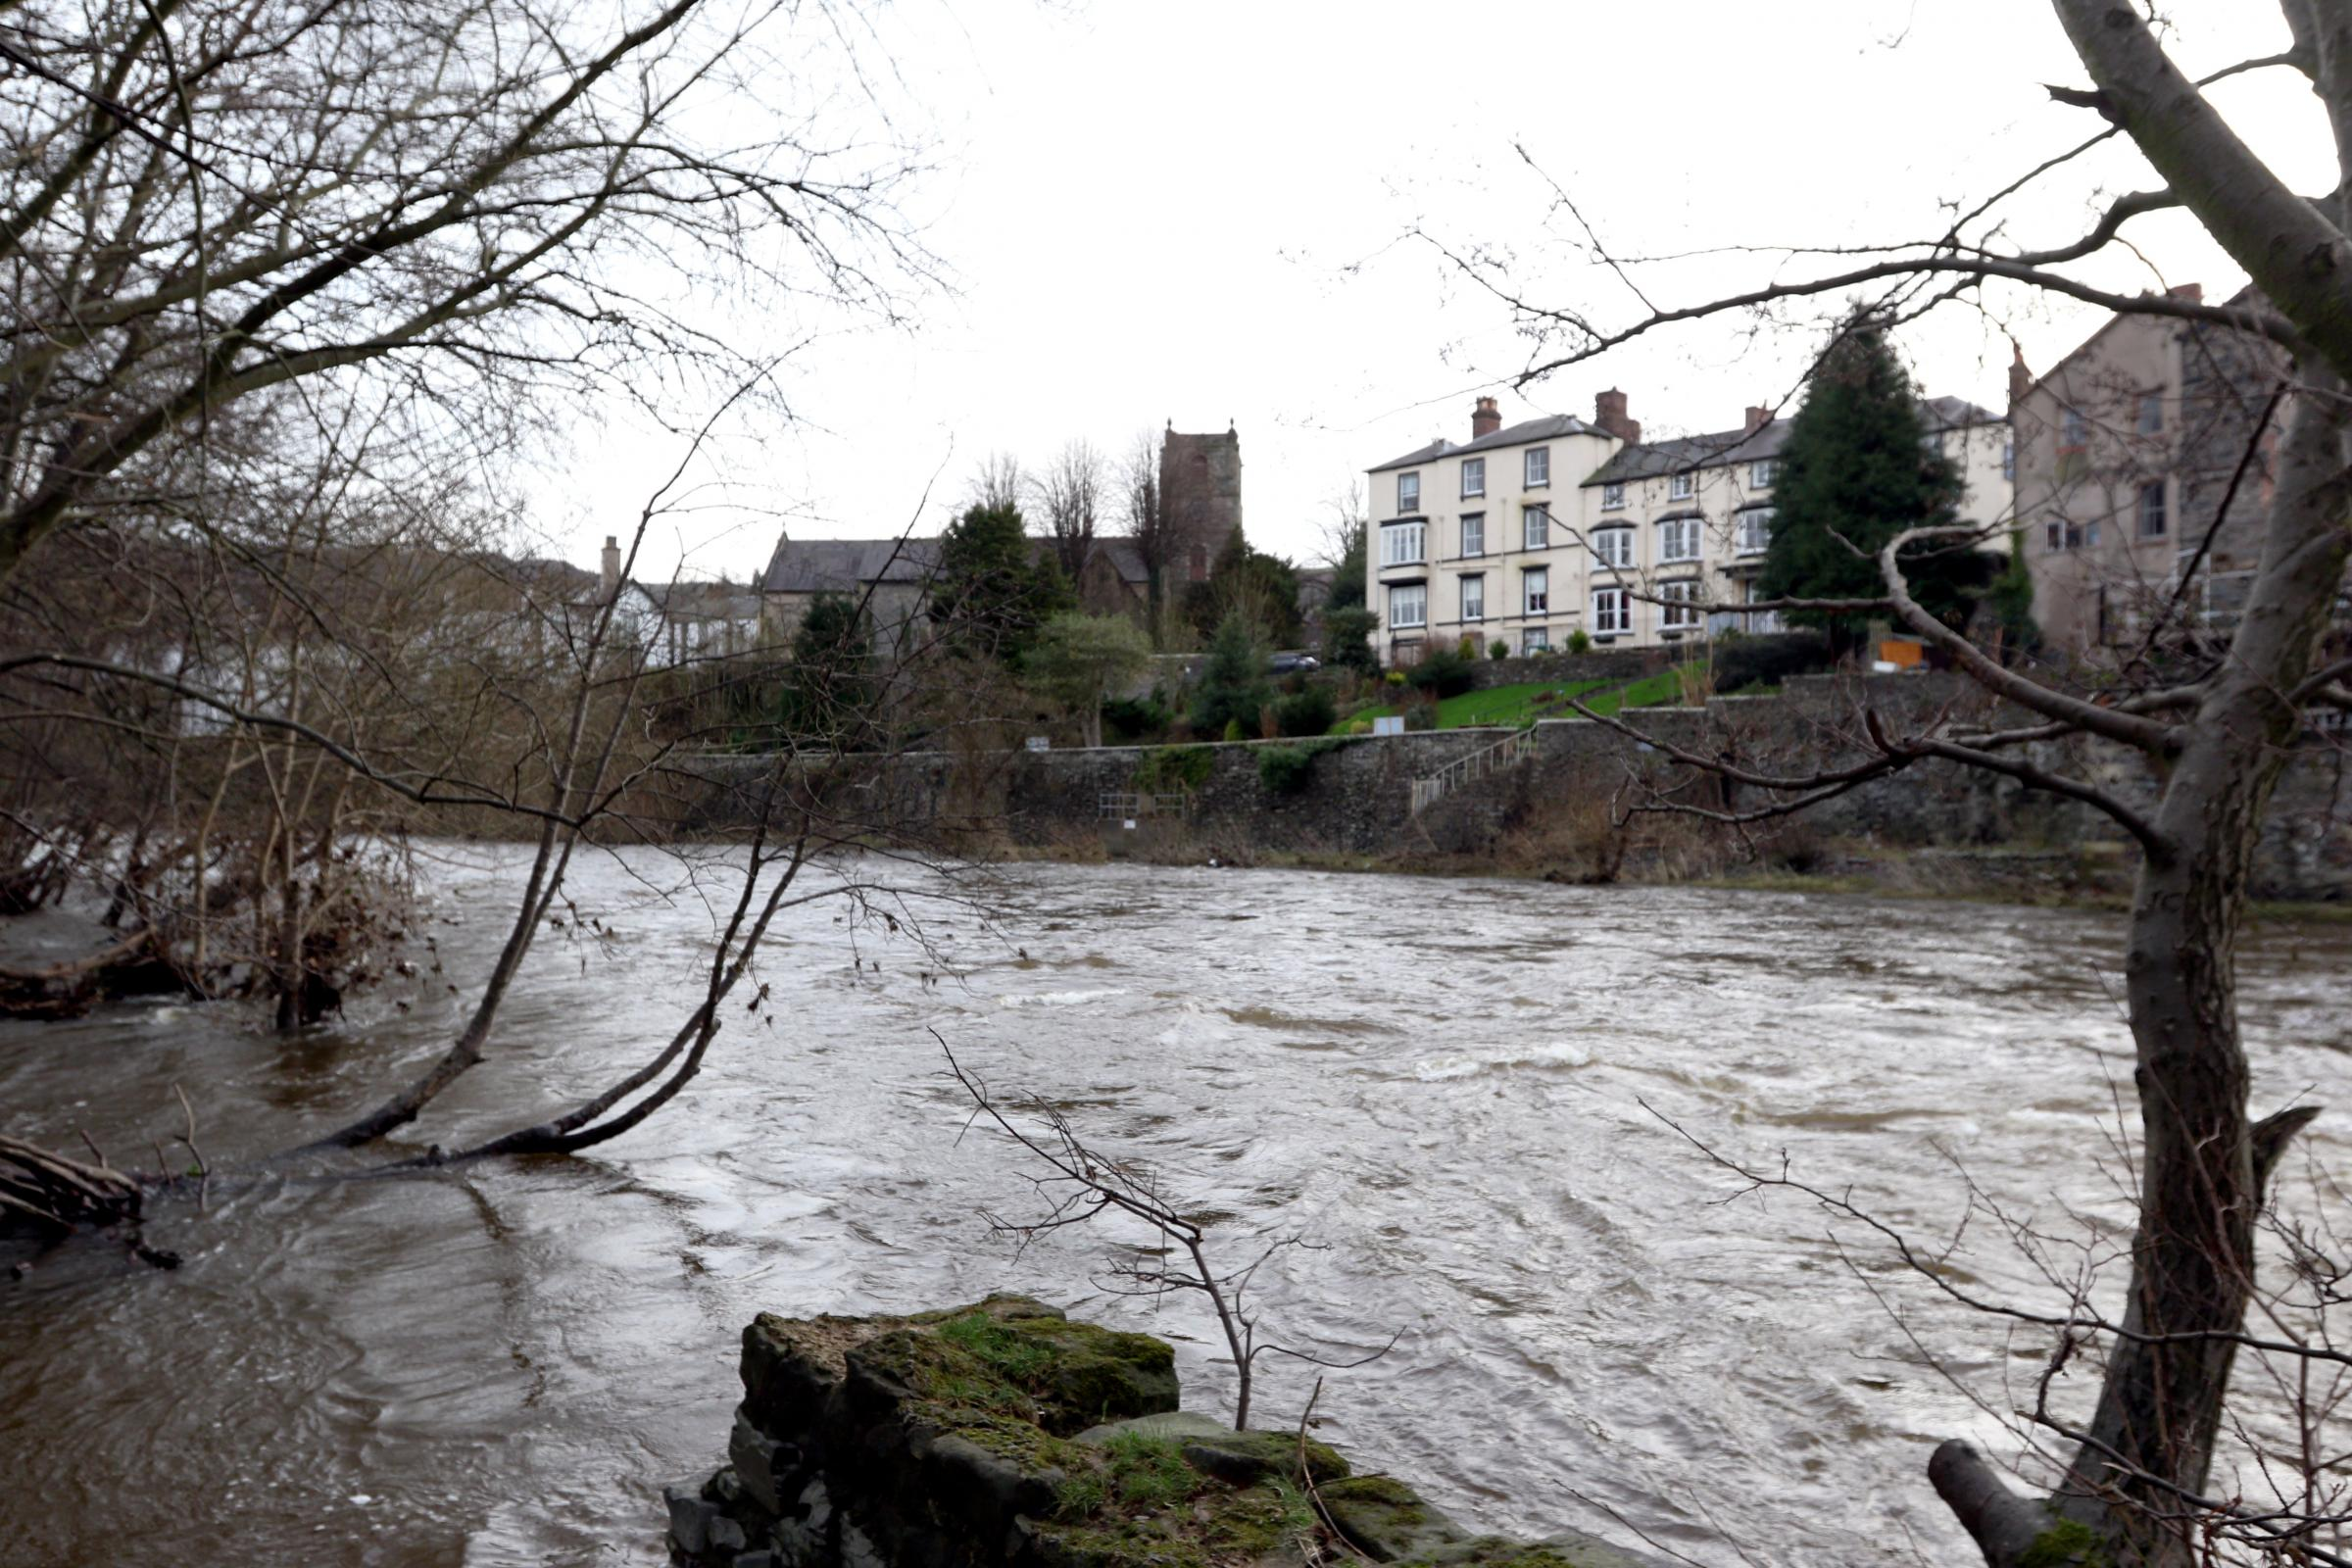 Scene shot of the River Dee in Llangollen